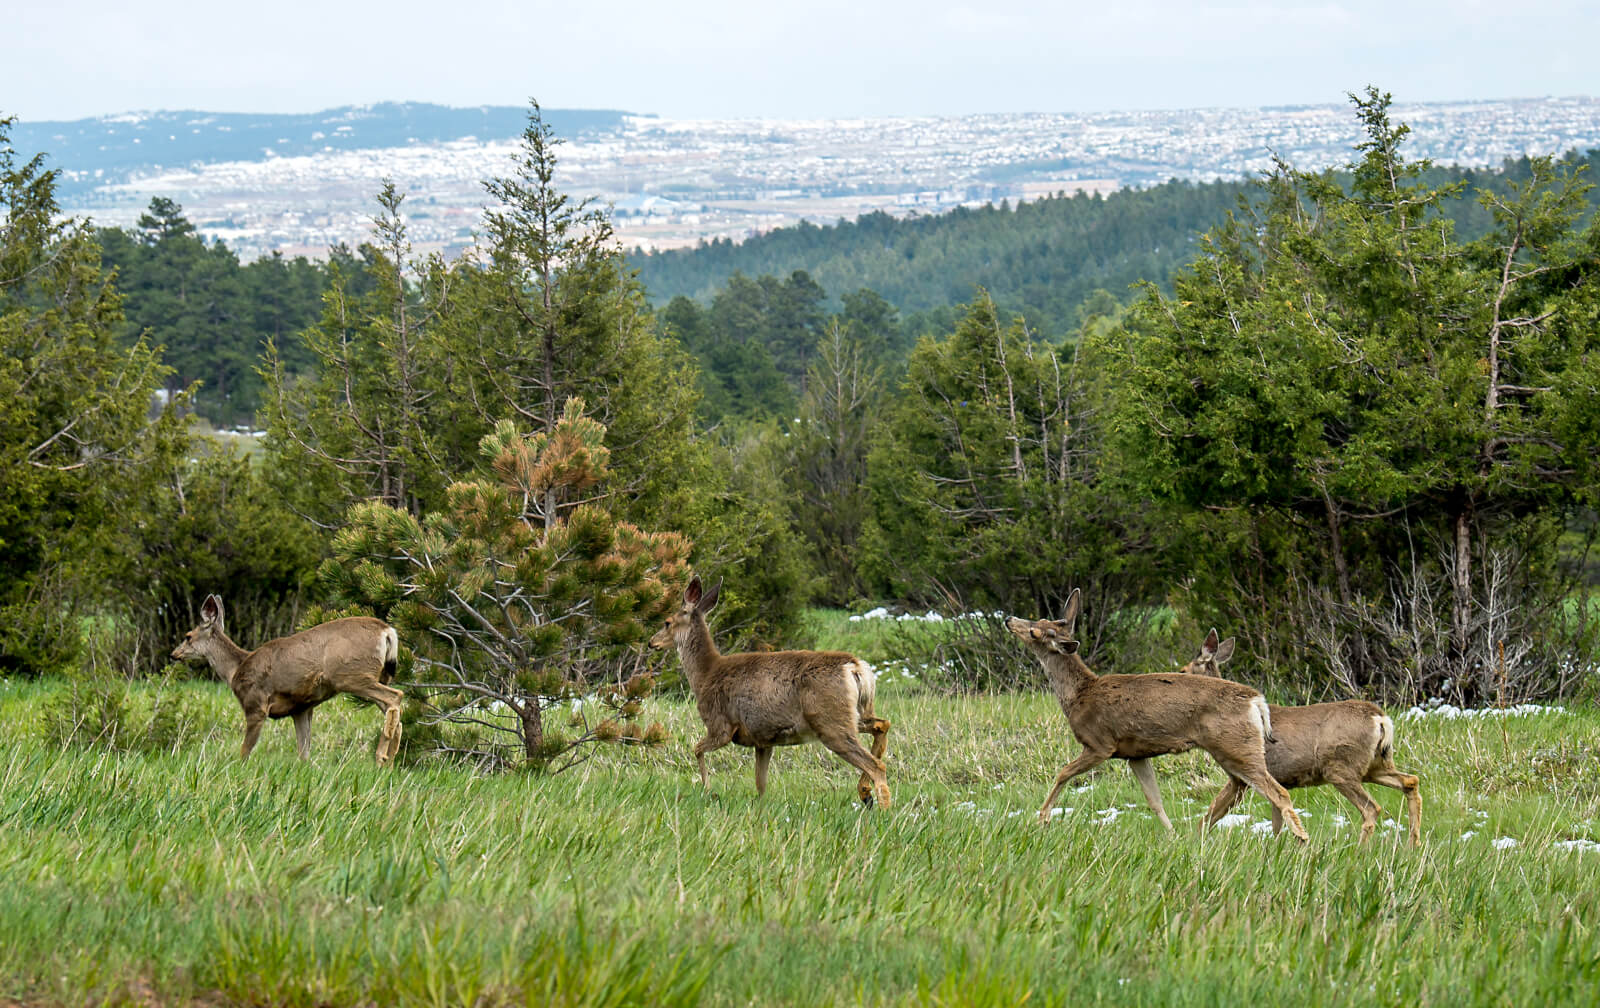 Group of deer on US Air Force Academy